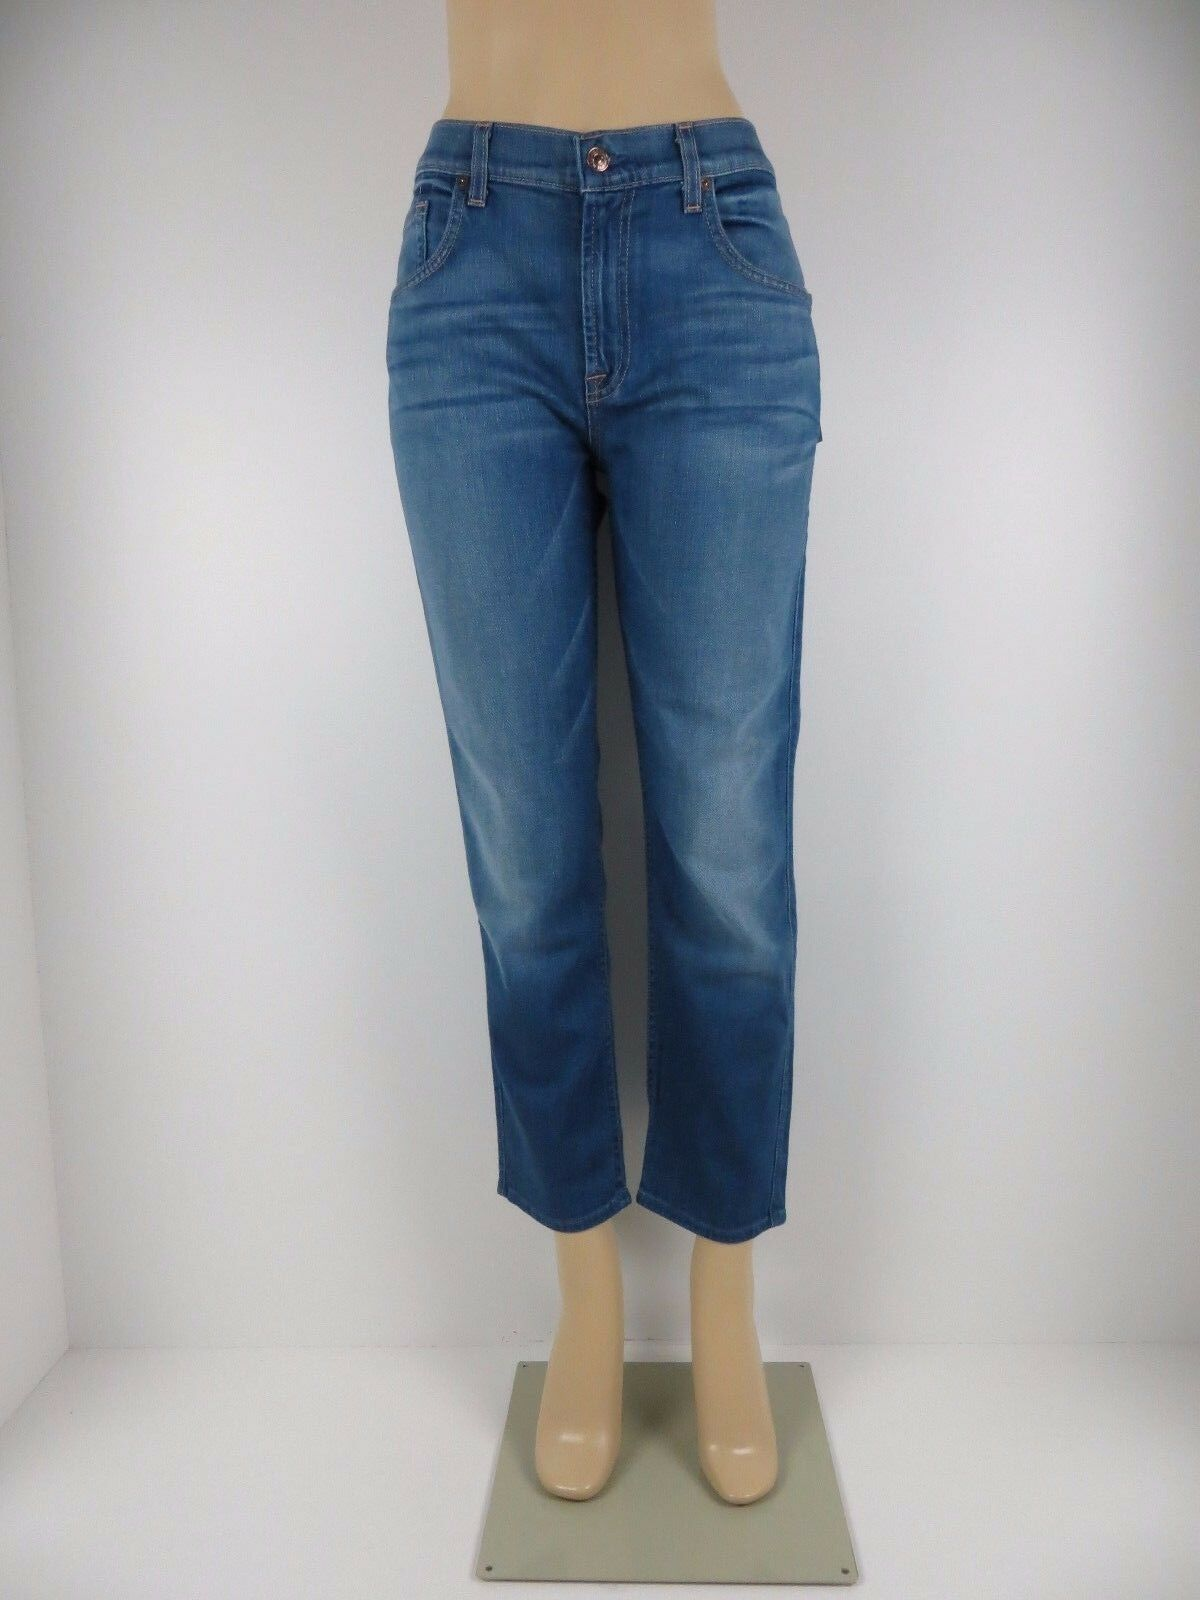 NWT 7 SEVEN FOR ALL MANKIND JEANS,The Cropped Relaxed Skinny, WDM, Size 31,